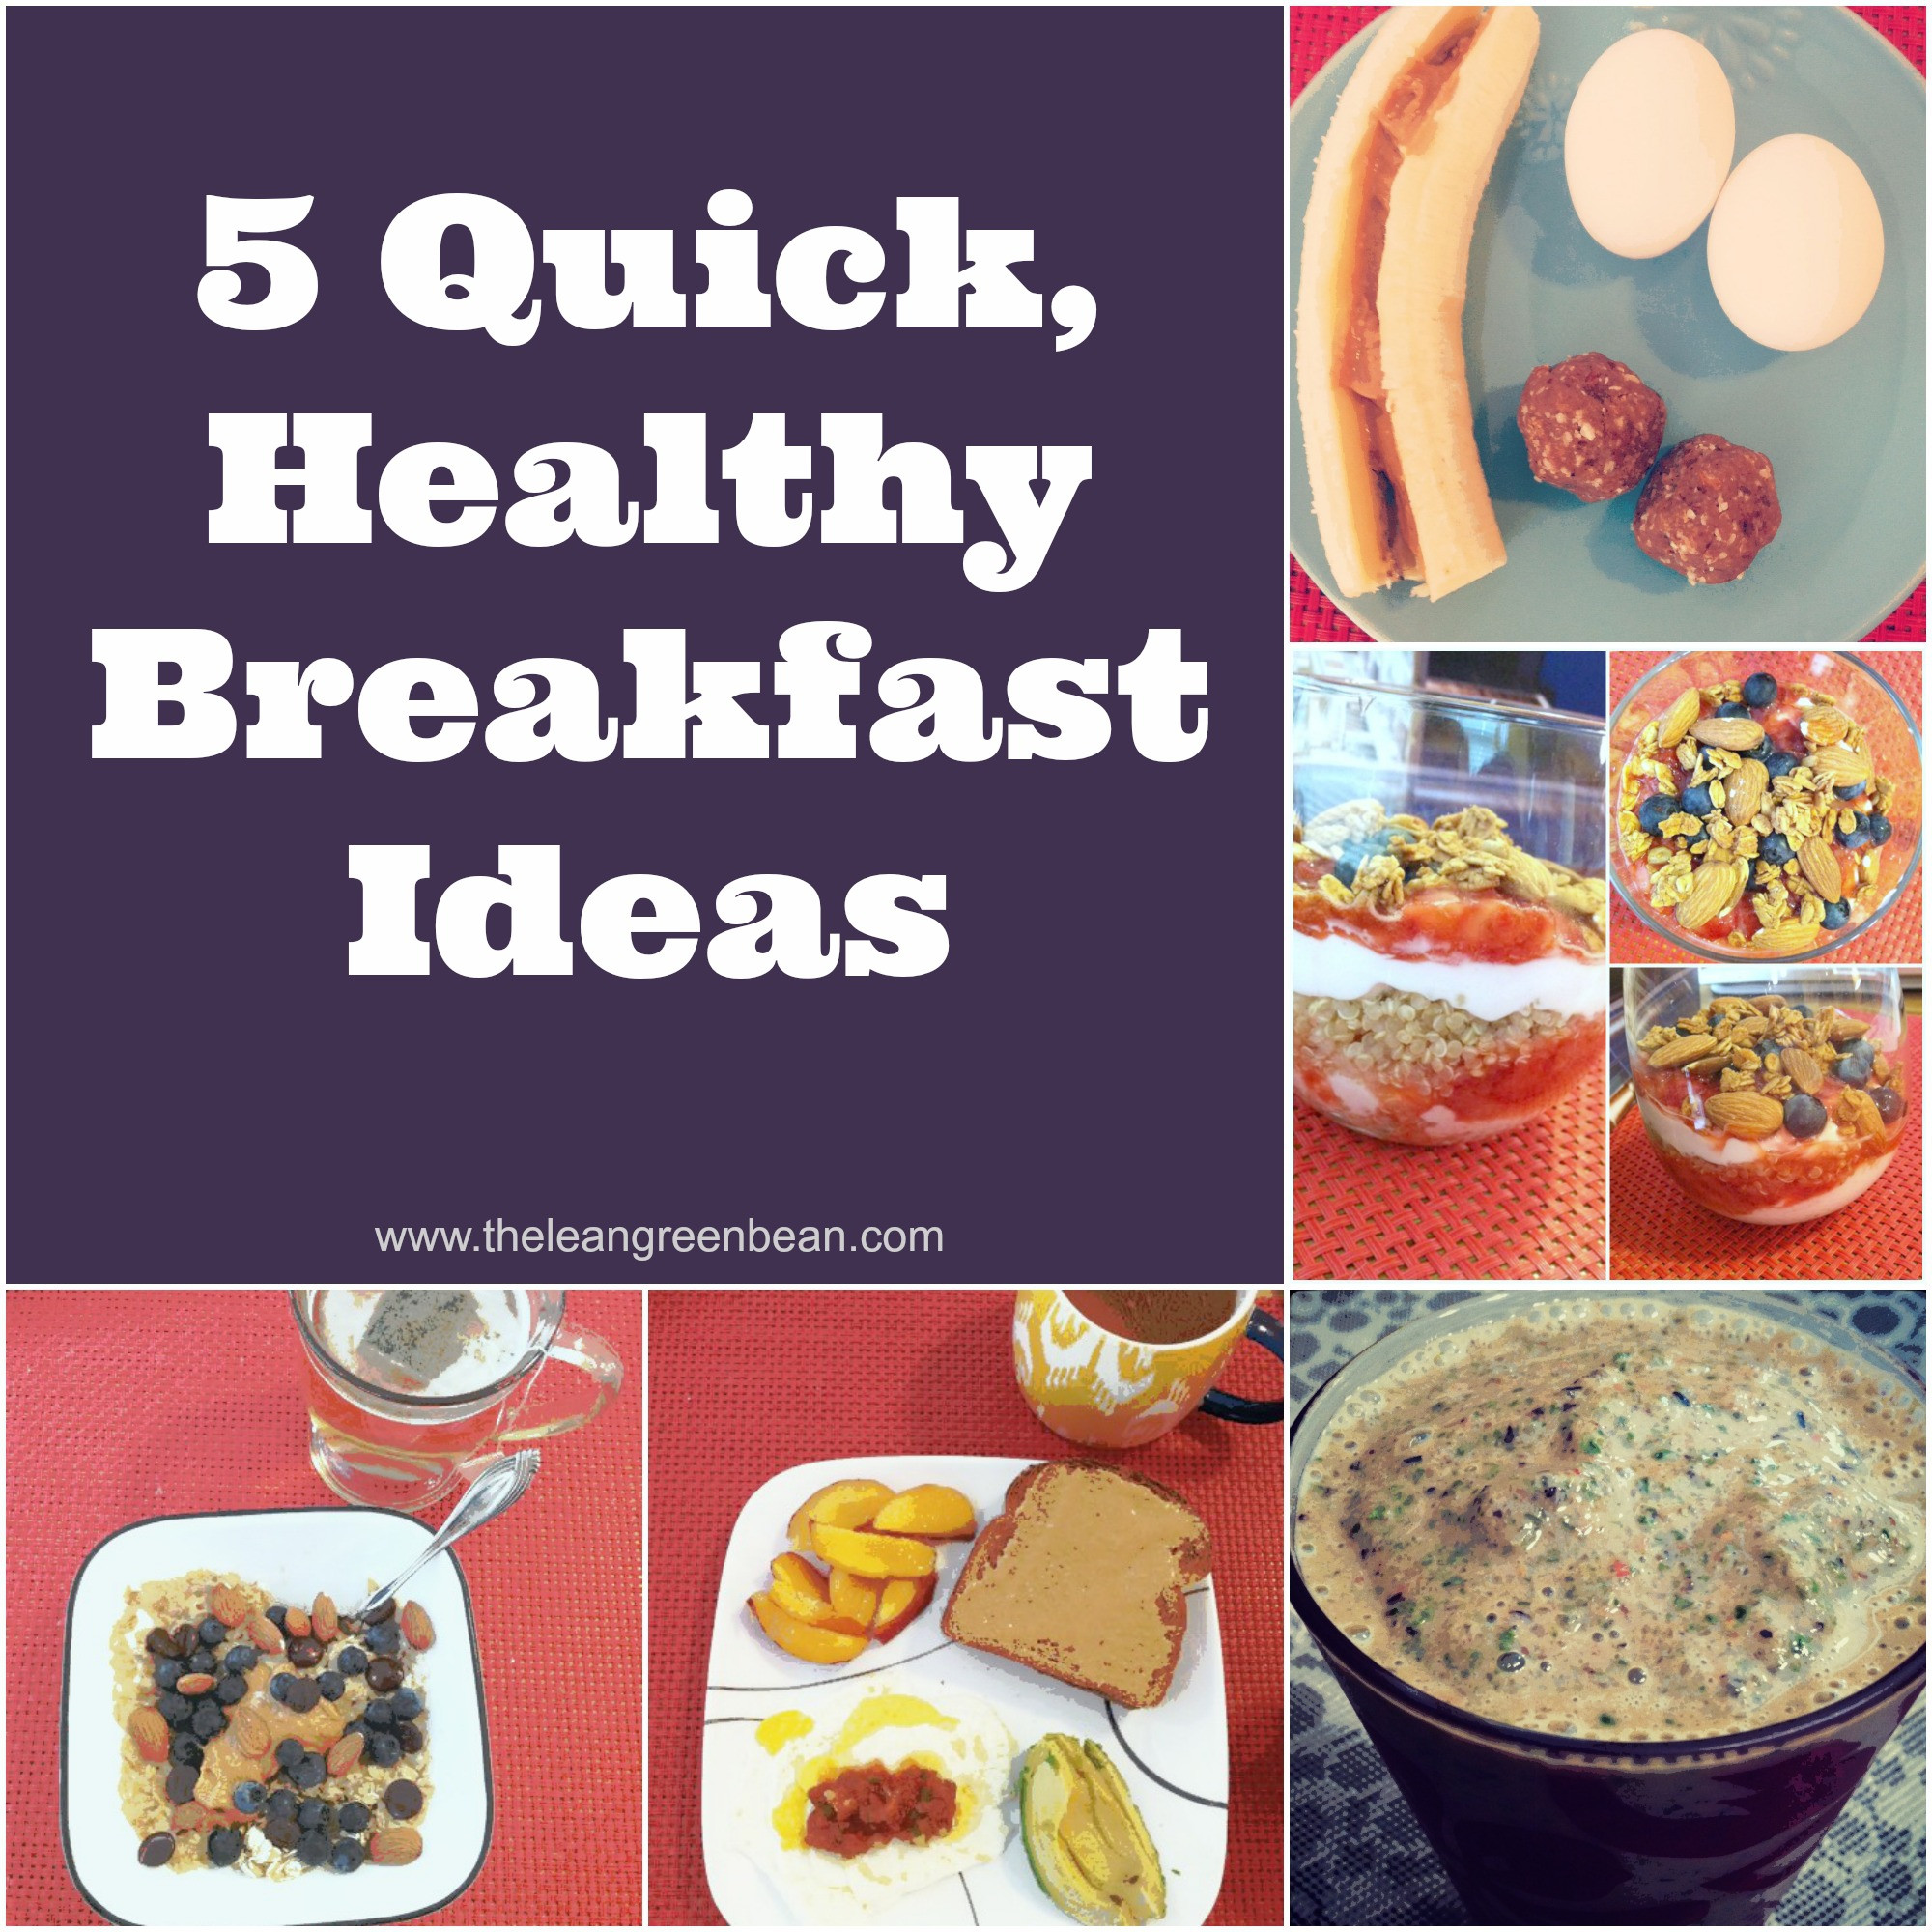 Quick Healthy Breakfast  5 Quick Healthy Breakfast Ideas from a Registered Dietitian